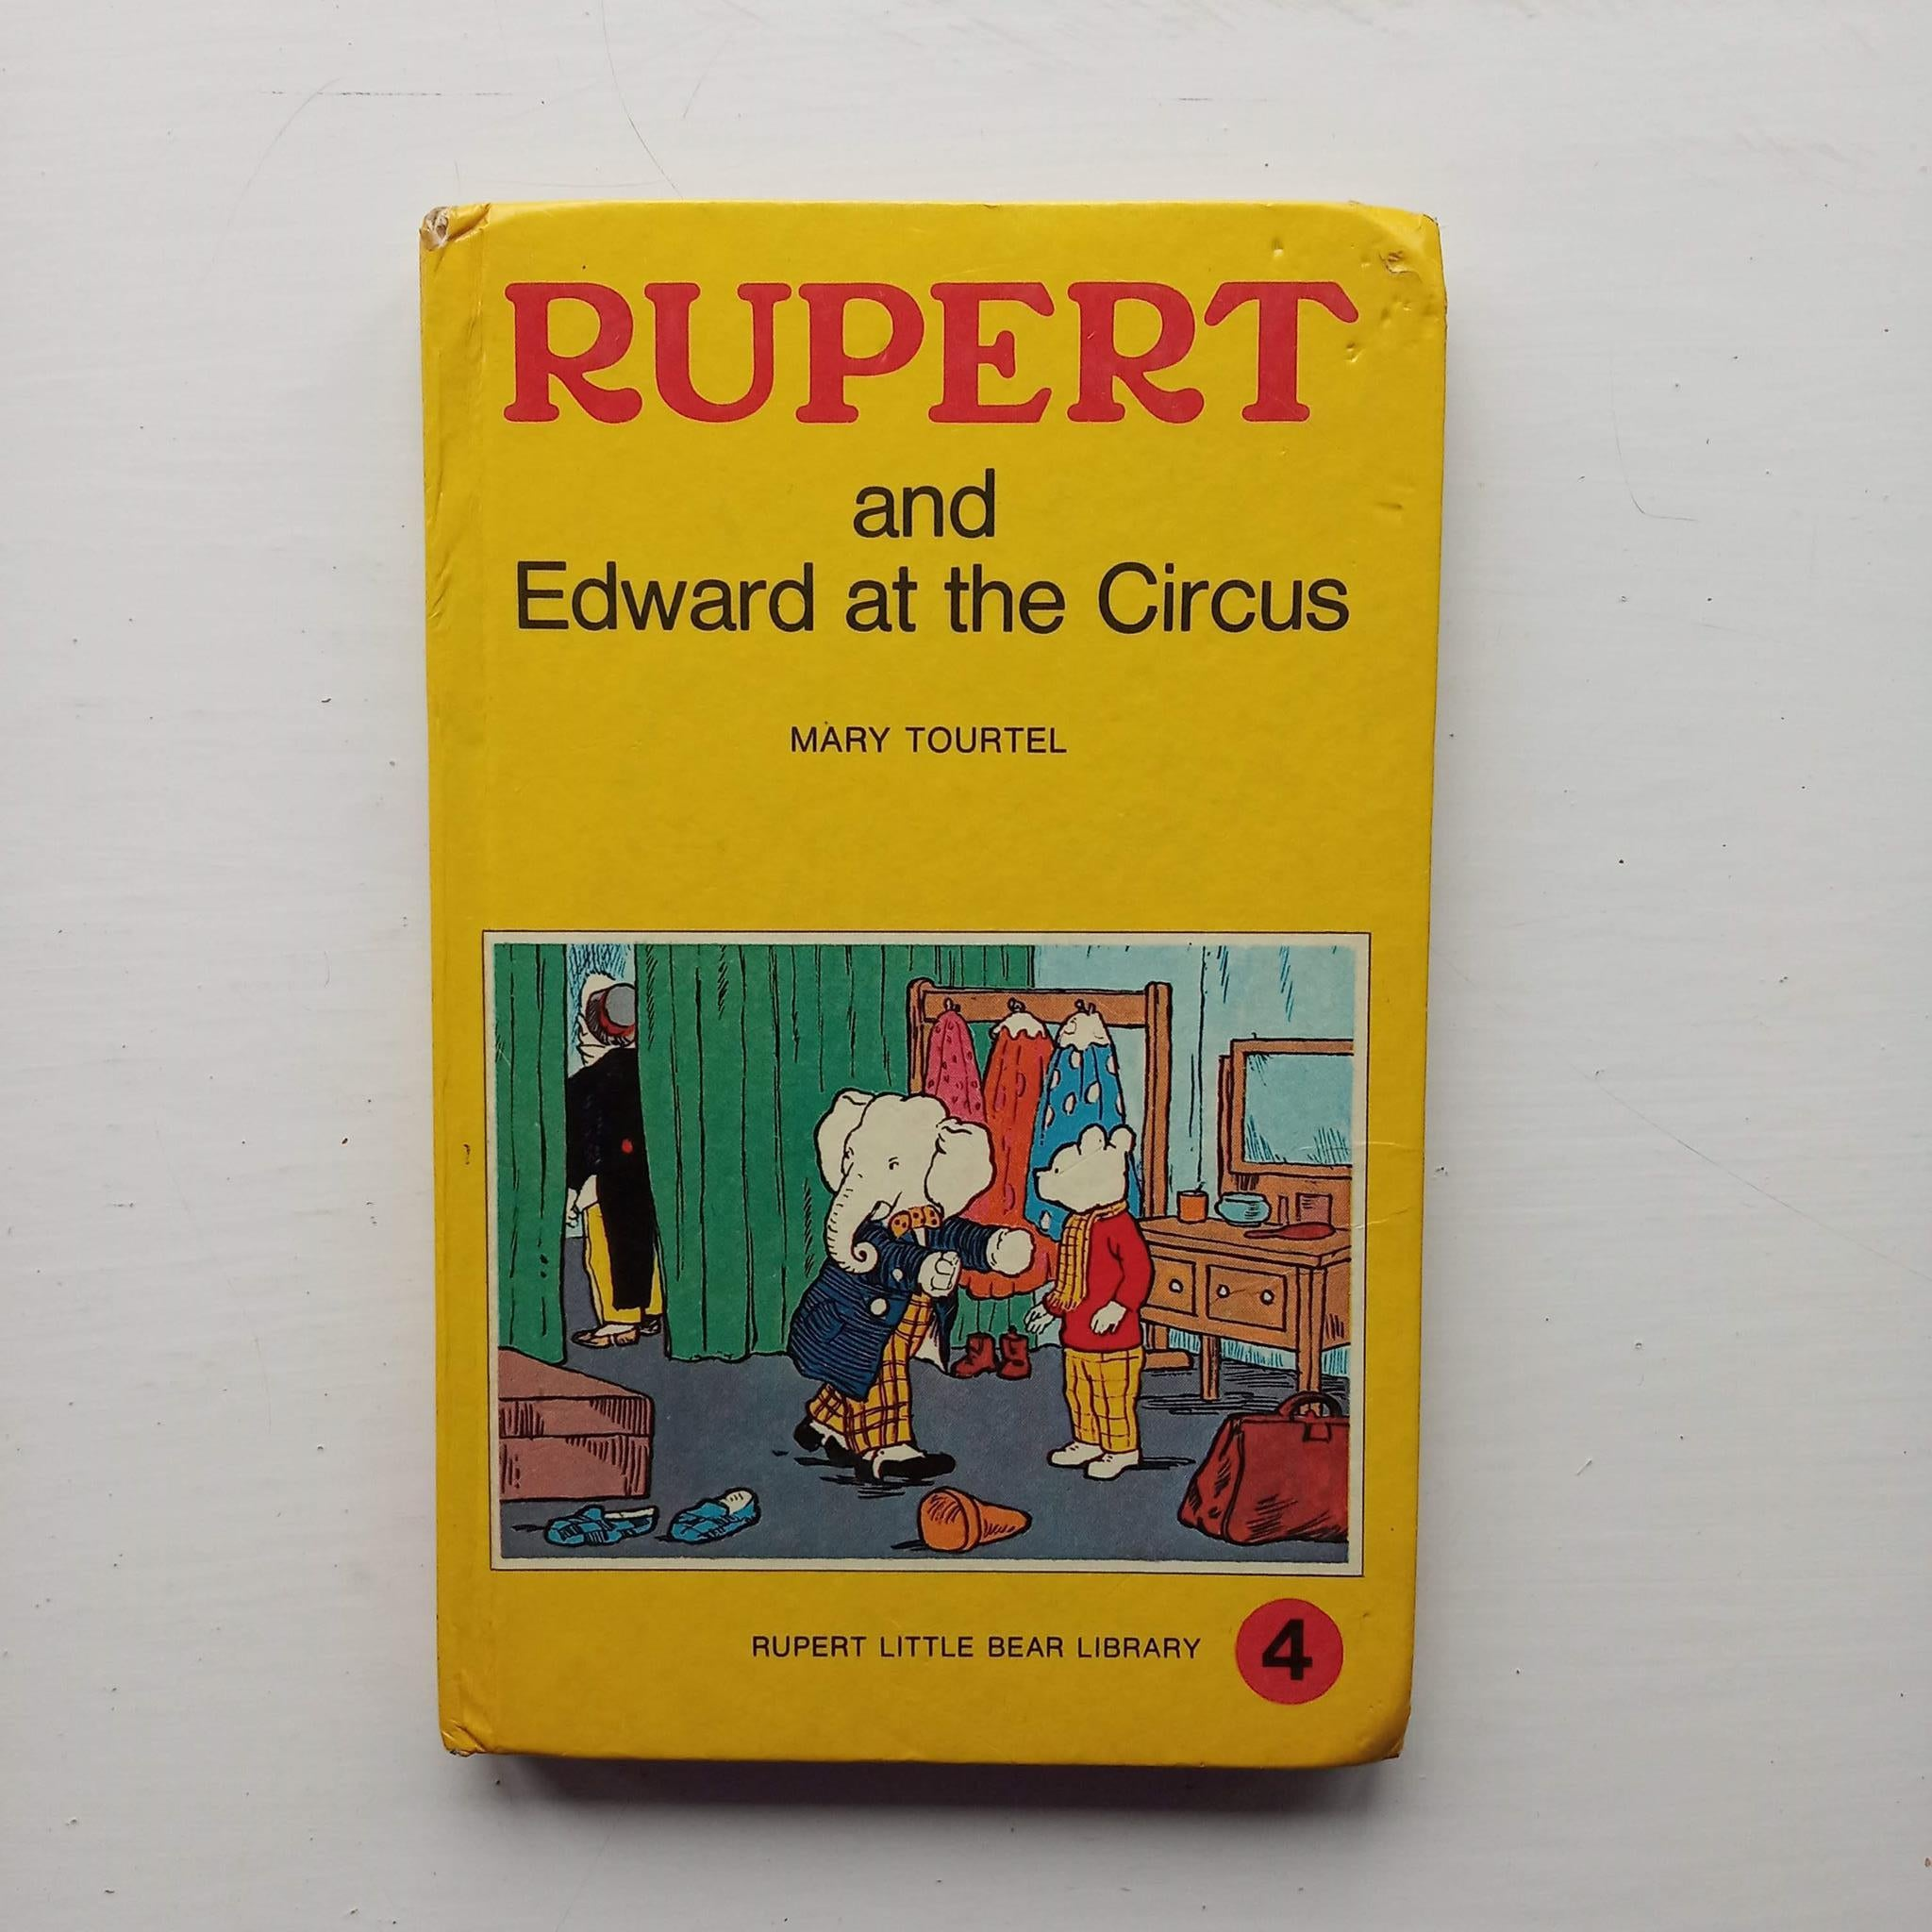 Rupert and Edward at the Circus by Mary Tourtel